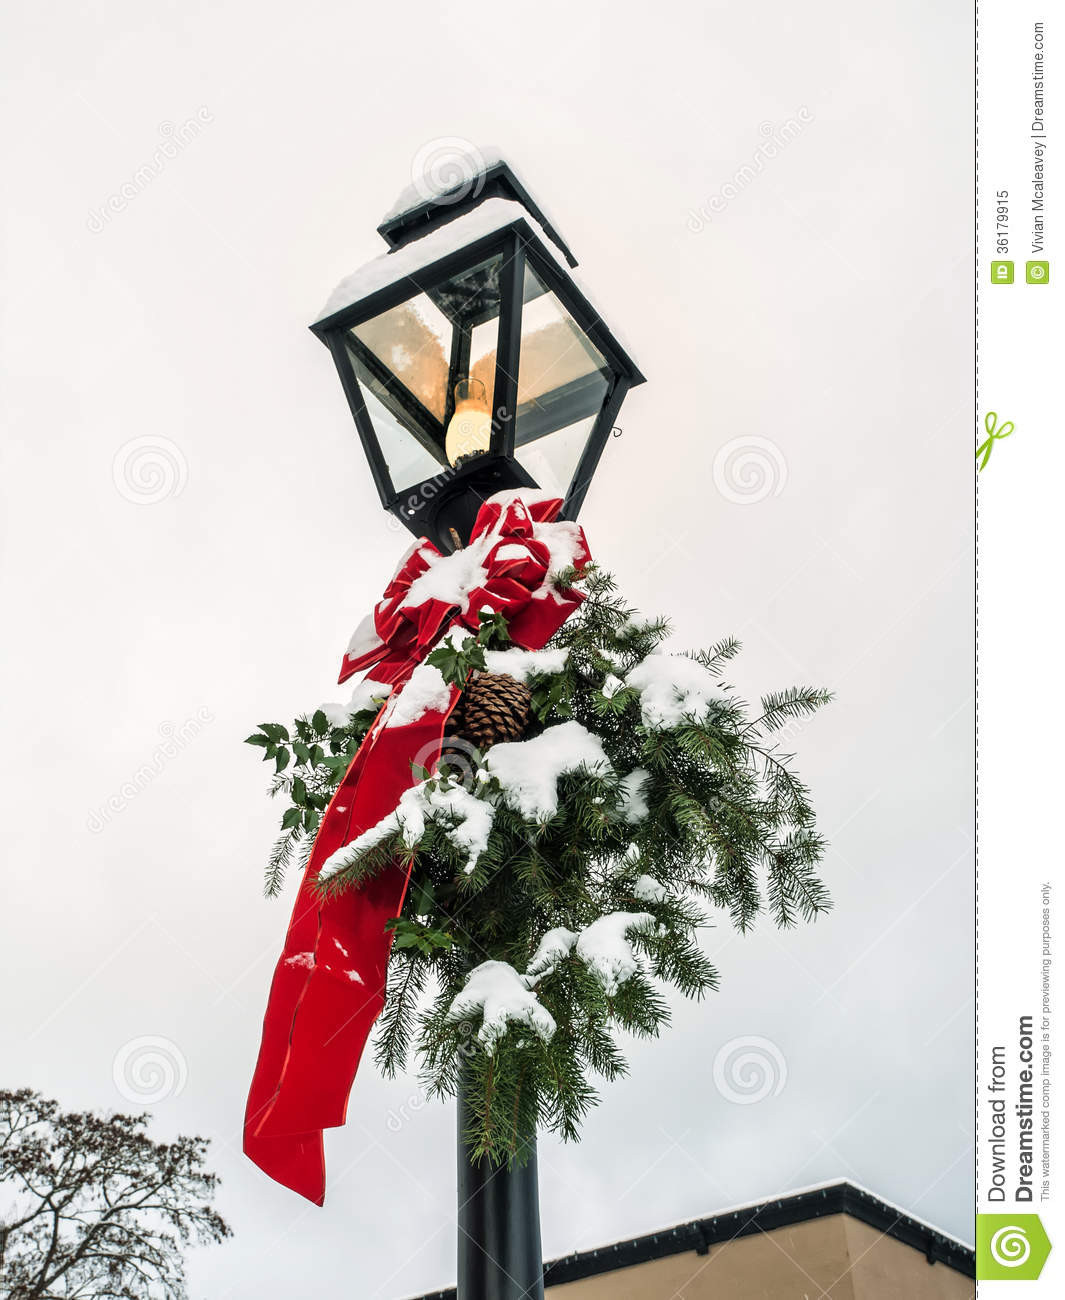 Christmas Lamp Post Decorations  Lamp Post With Christmas Decoration Stock Image Image of